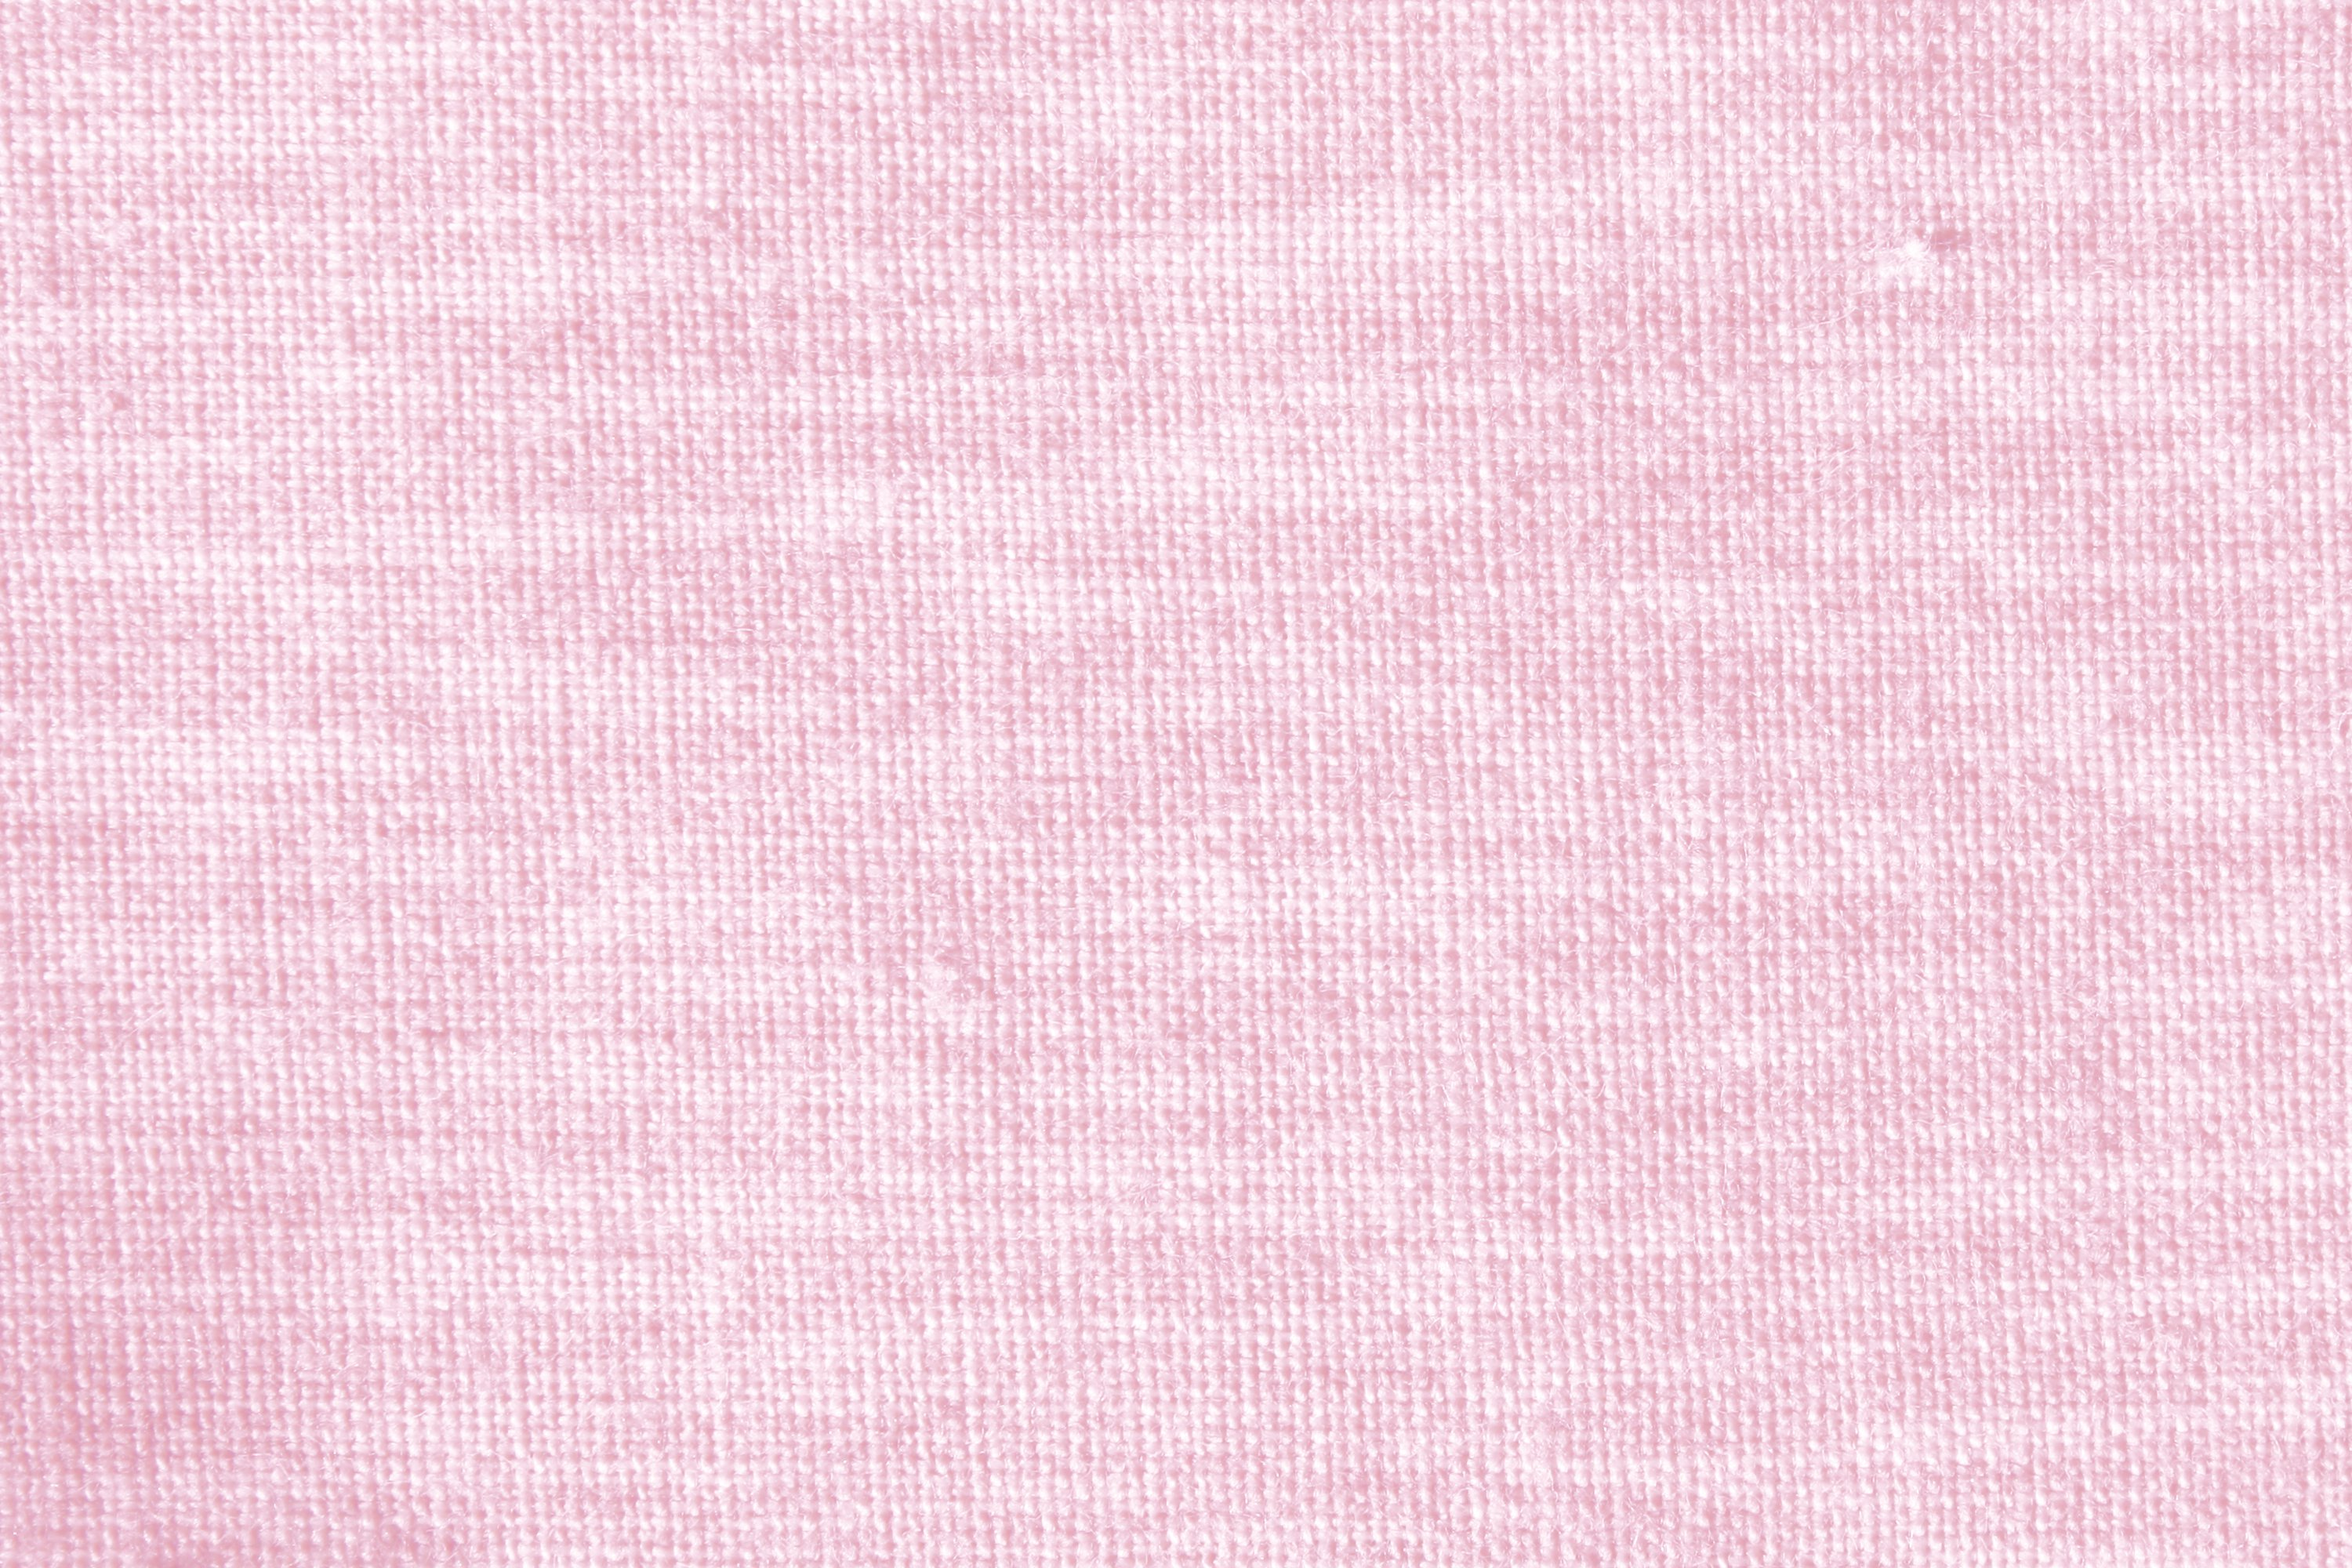 Light Pink Textured Backgrounds Related Keywords ...